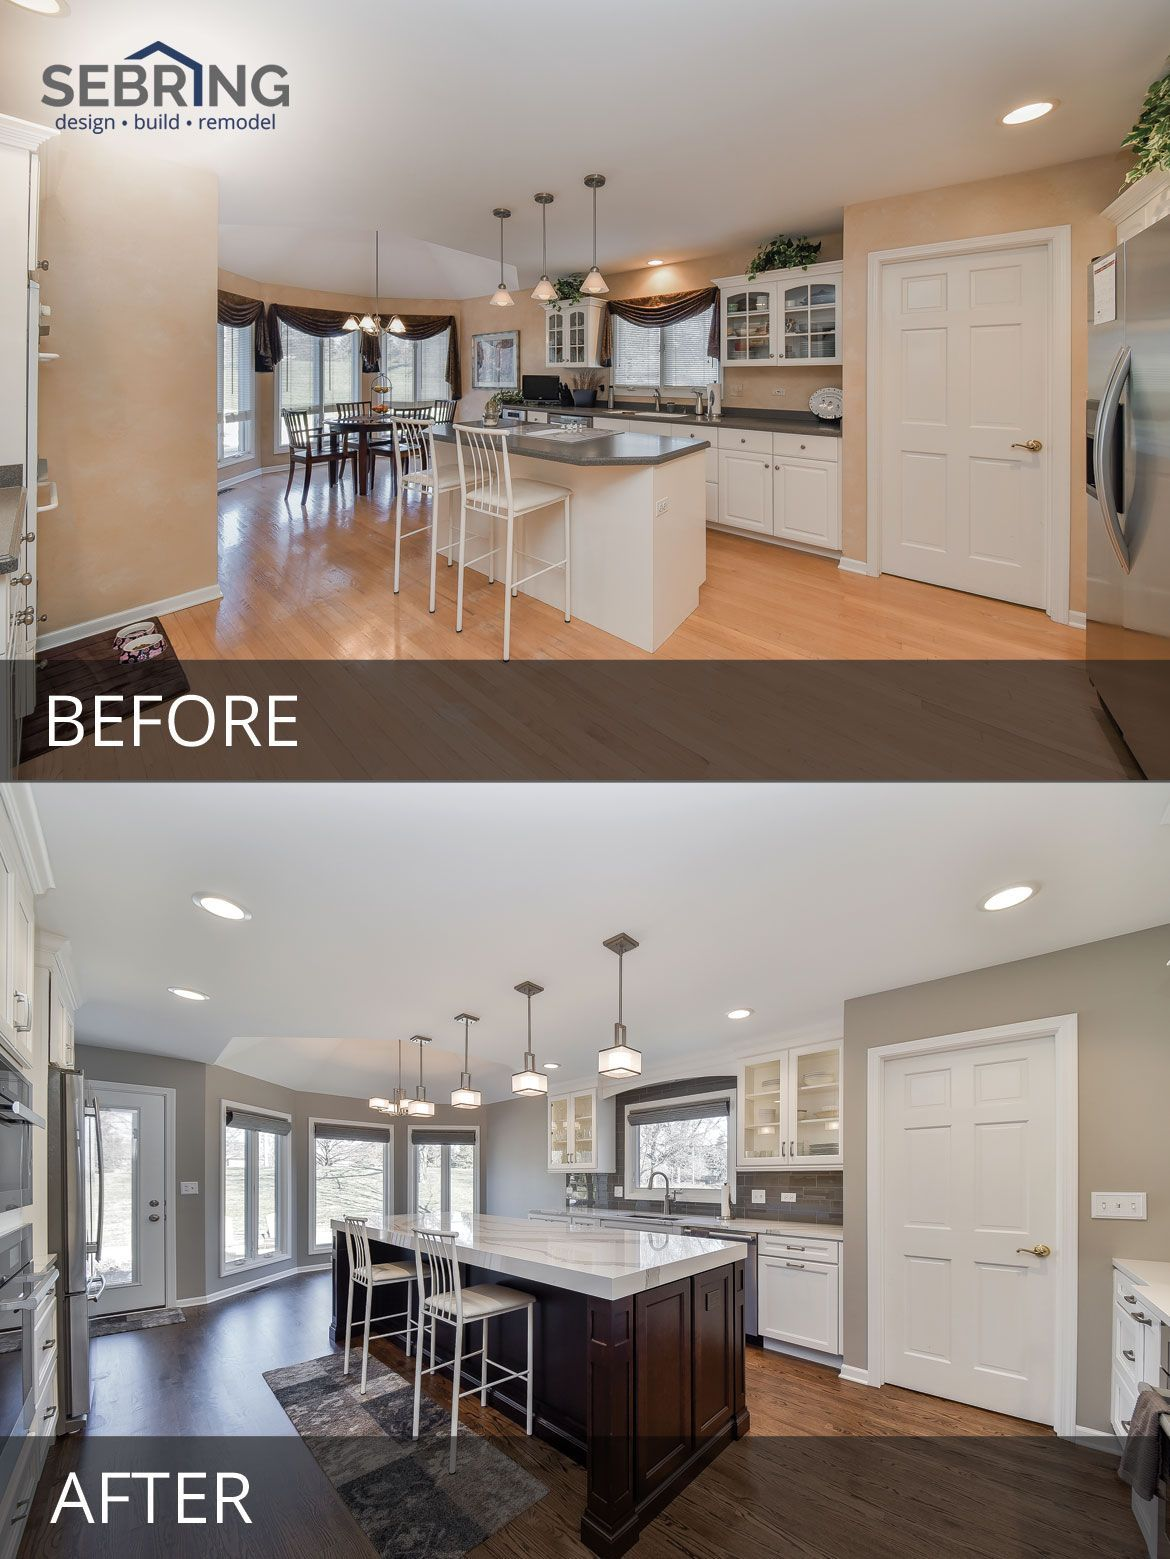 Dave u cathyus kitchen before u after pictures in easy